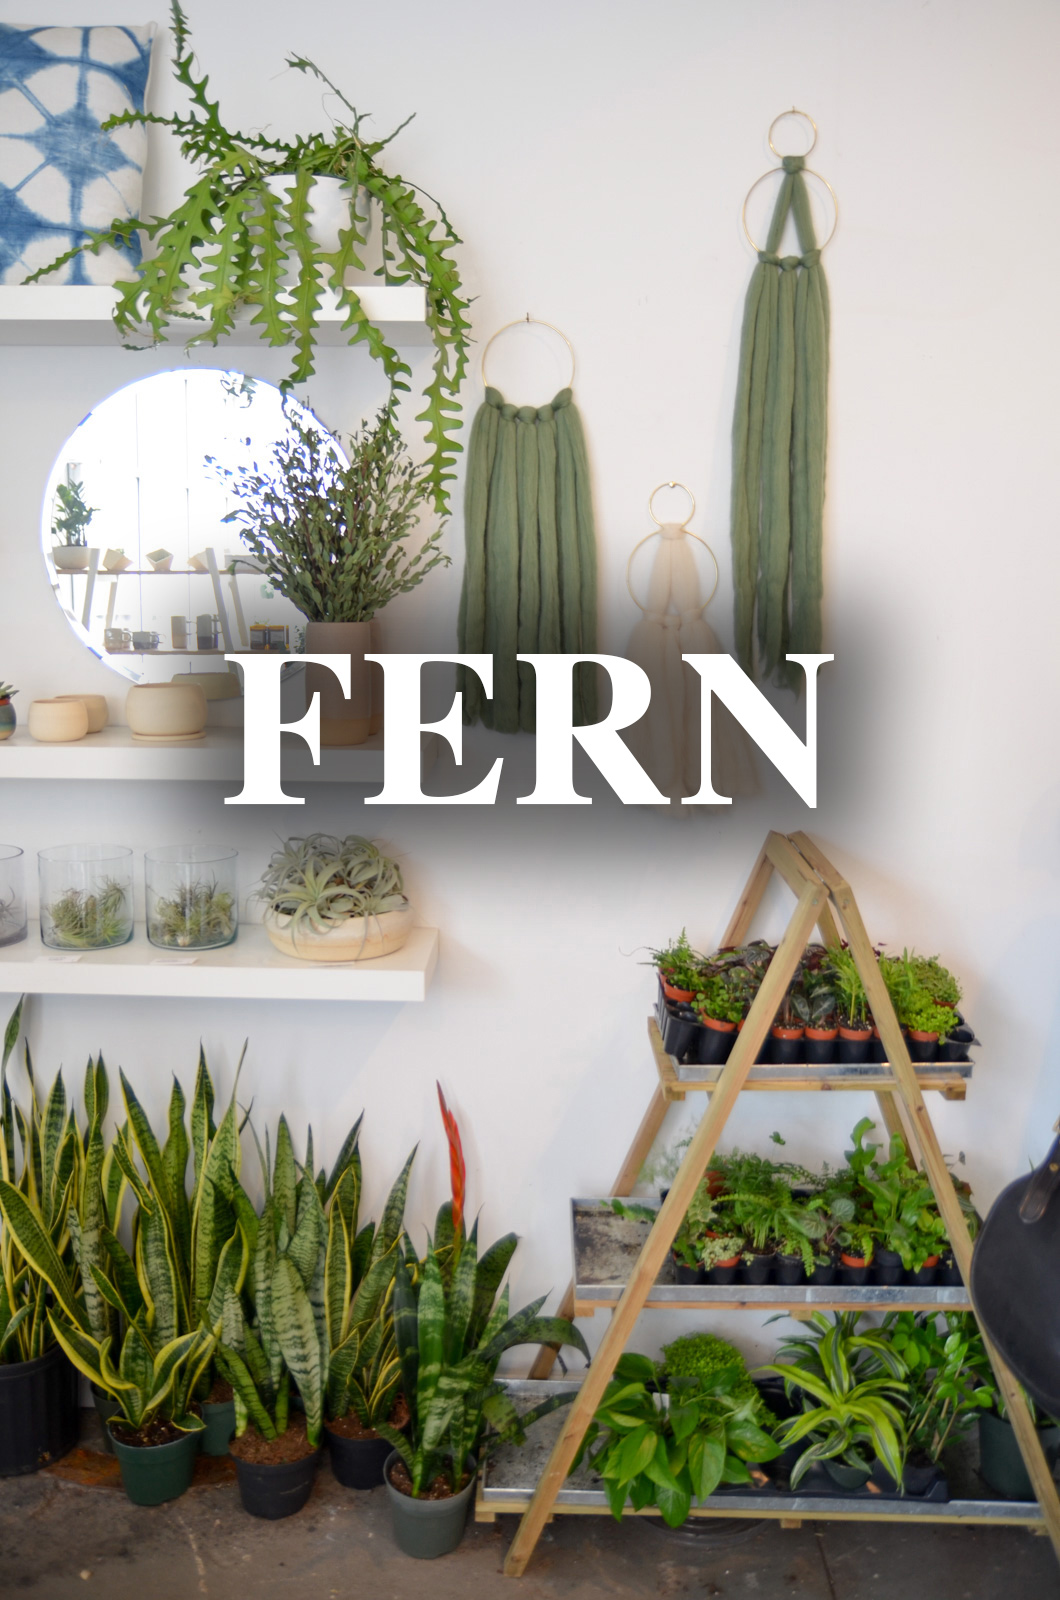 Fern at{ }6040 Hamilton Avenue, Cincinnati, OH (45224) / Image: Brevin Couch // Published: 11.26.19